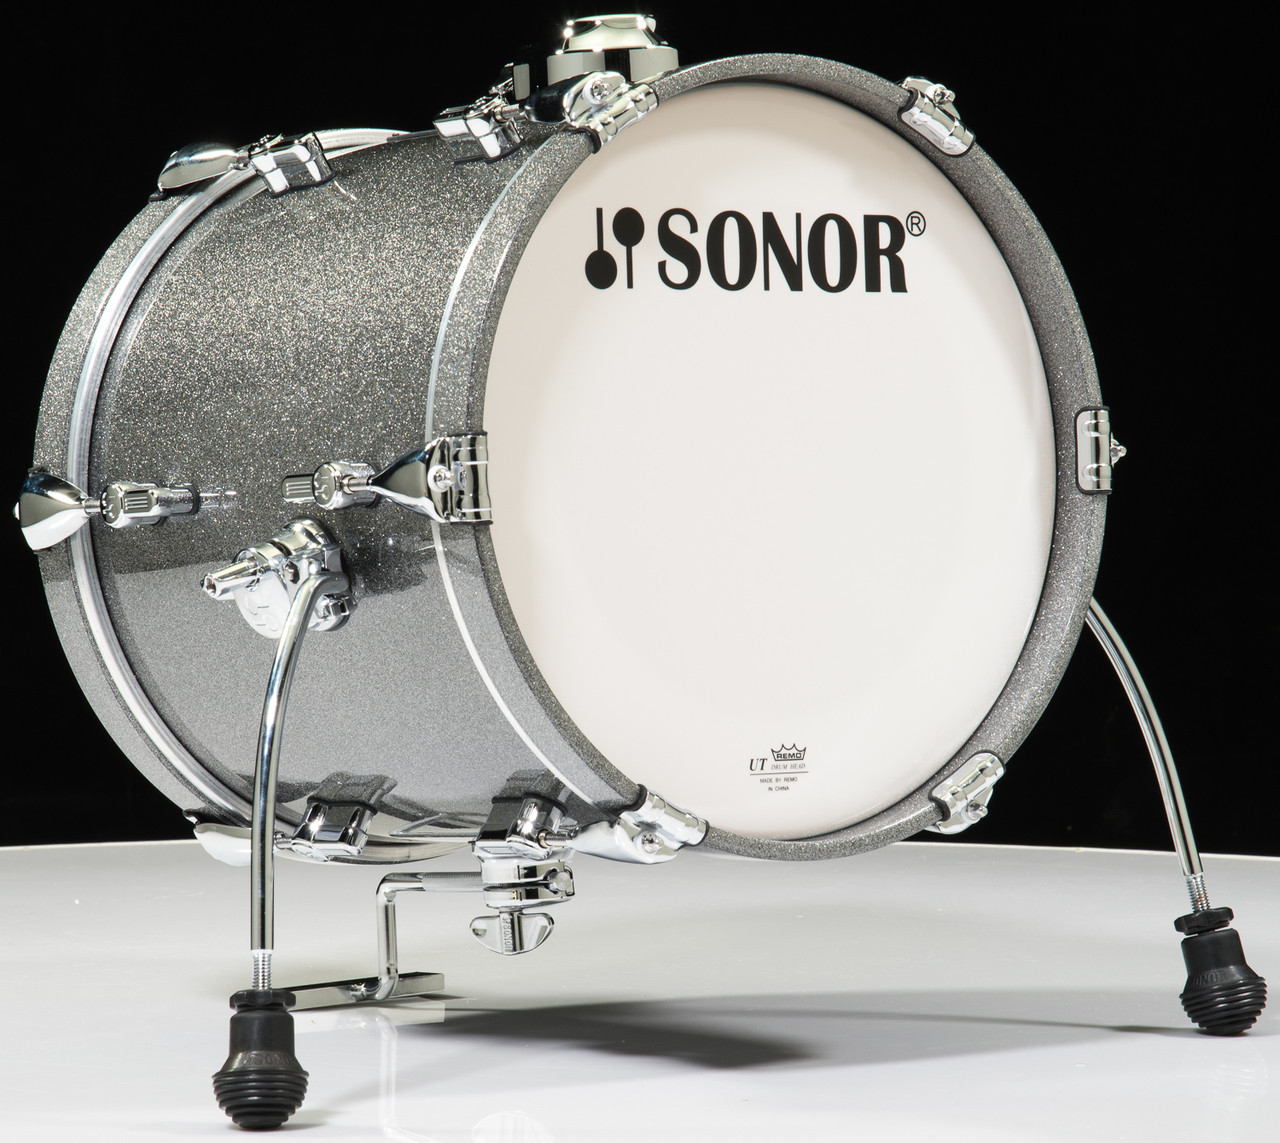 sonor aq2 14x13 bass drum titanium quartz lacquer. Black Bedroom Furniture Sets. Home Design Ideas